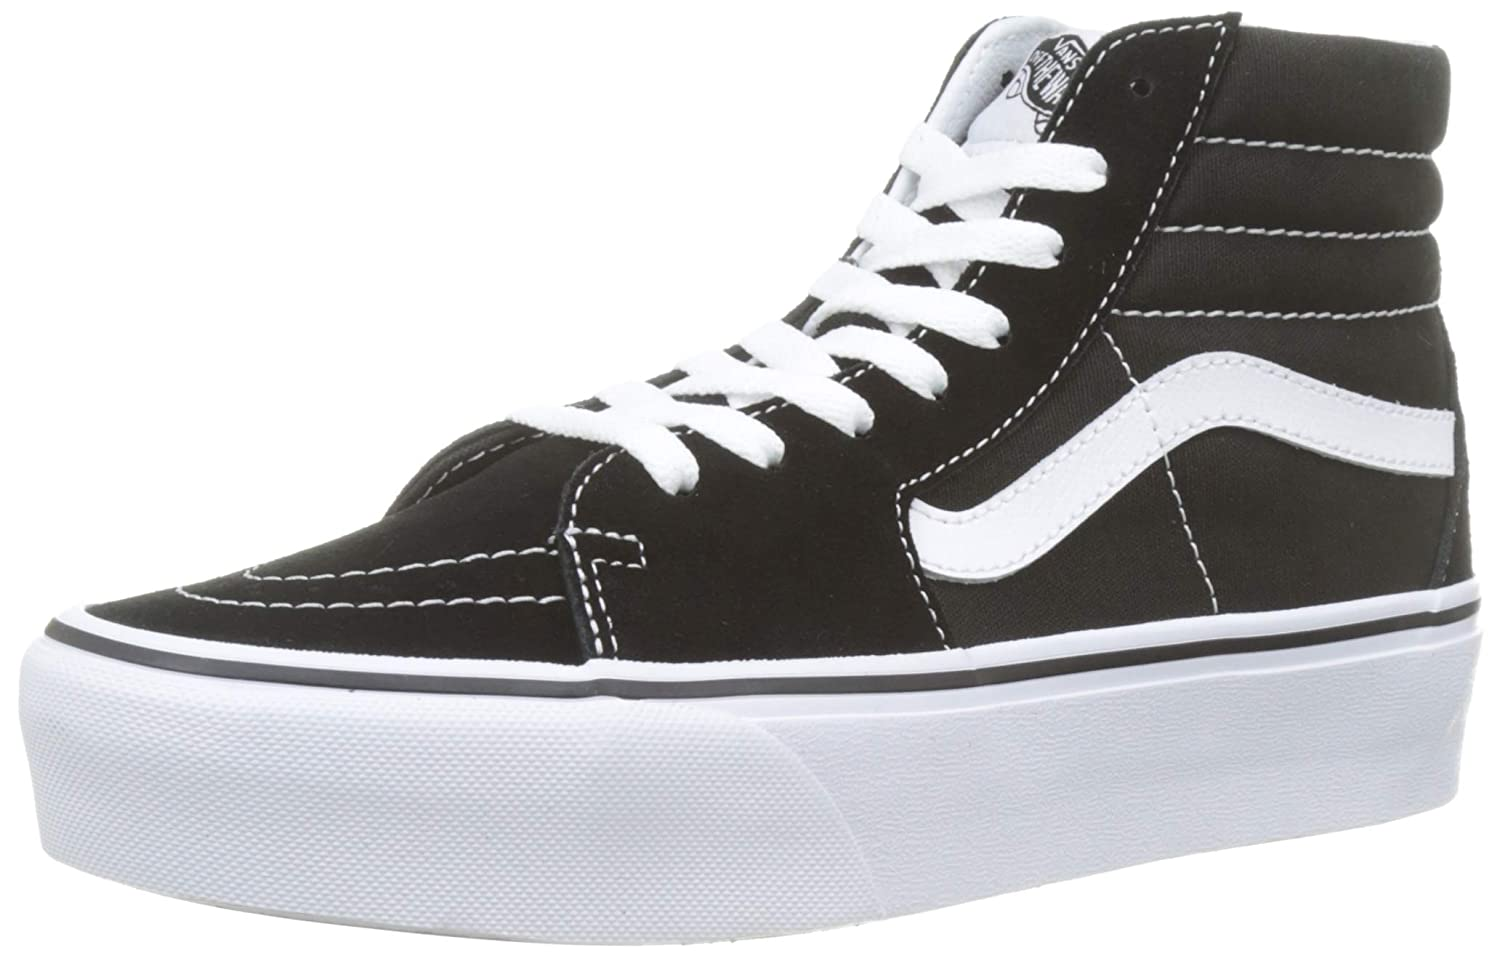 5cb782ffe5 Amazon.com | Vans Shoes Woman high Sneakers VN0A3TKN6BT1 SK8-HI Platform 2  | Fashion Sneakers